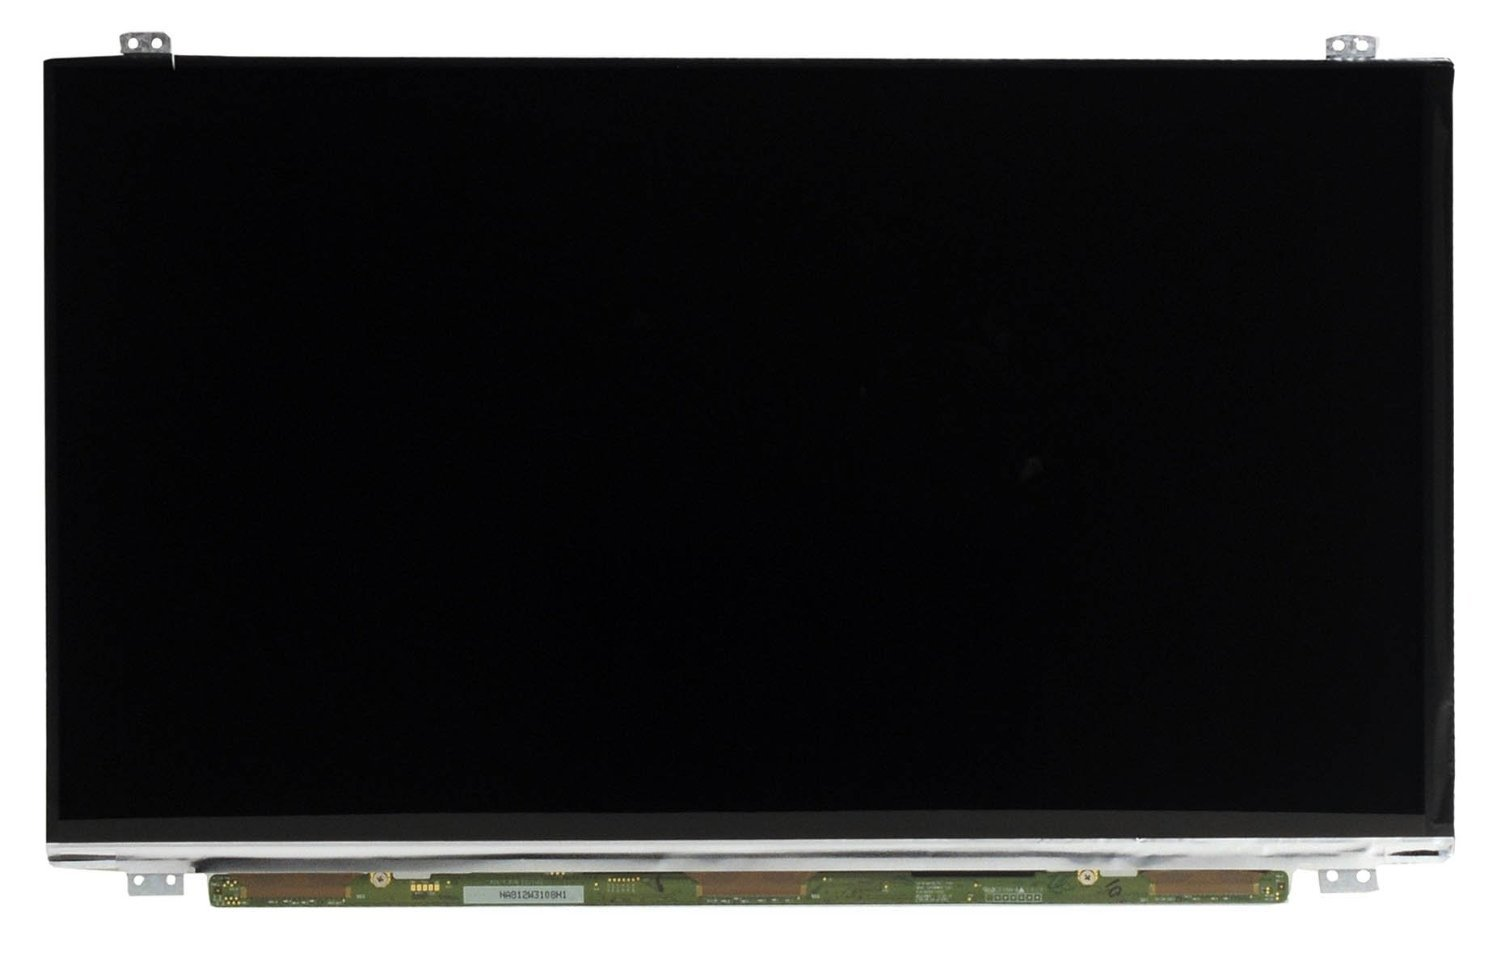 Substitute Replacement LCD Screen Only. Not a Laptop Au Optronics B156xw04 V.6 Replacement LAPTOP LCD Screen 15.6 WXGA HD LED DIODE